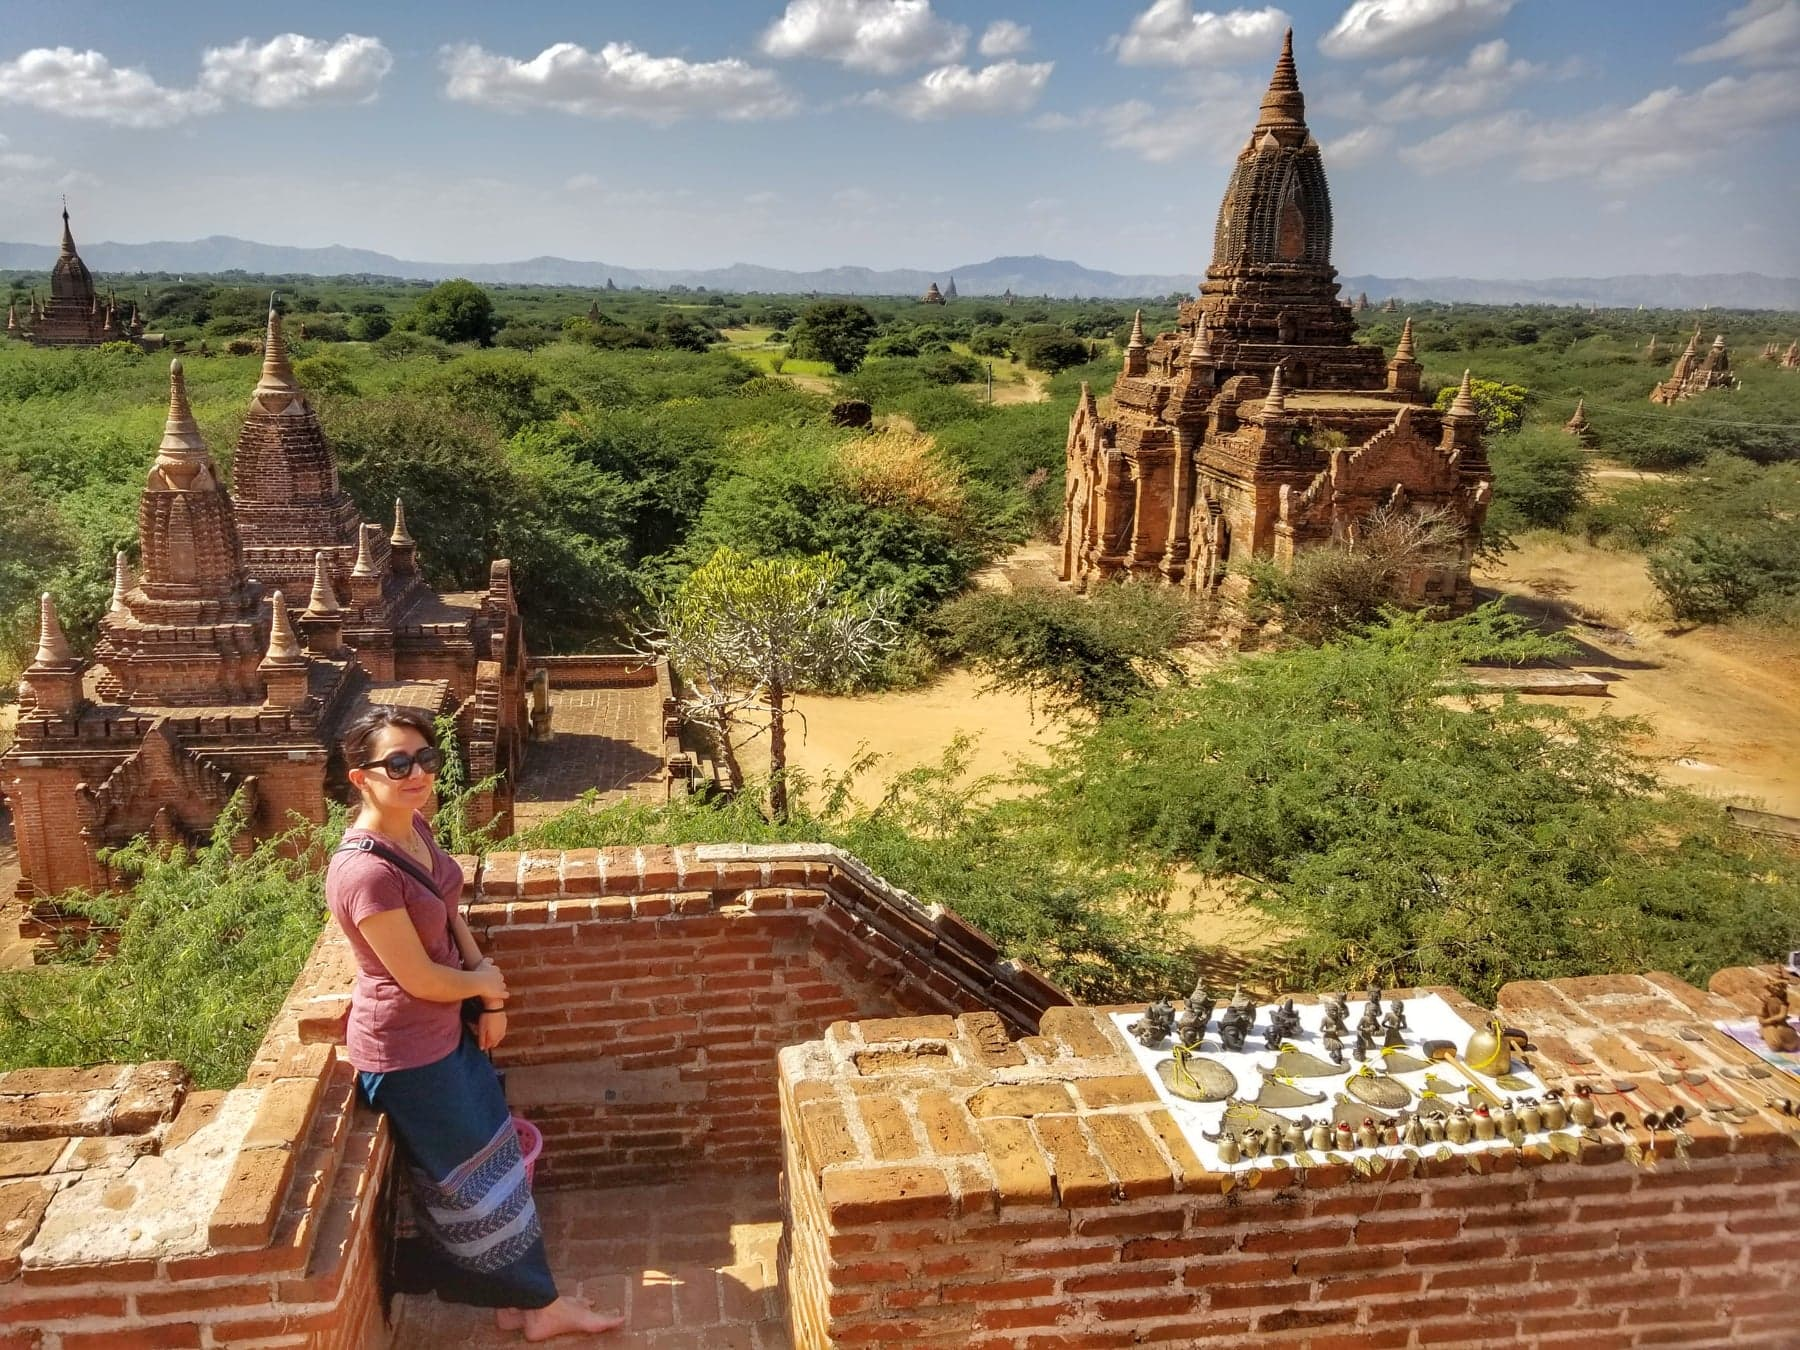 Things To Do In Bagan - See Temples and Pagodas